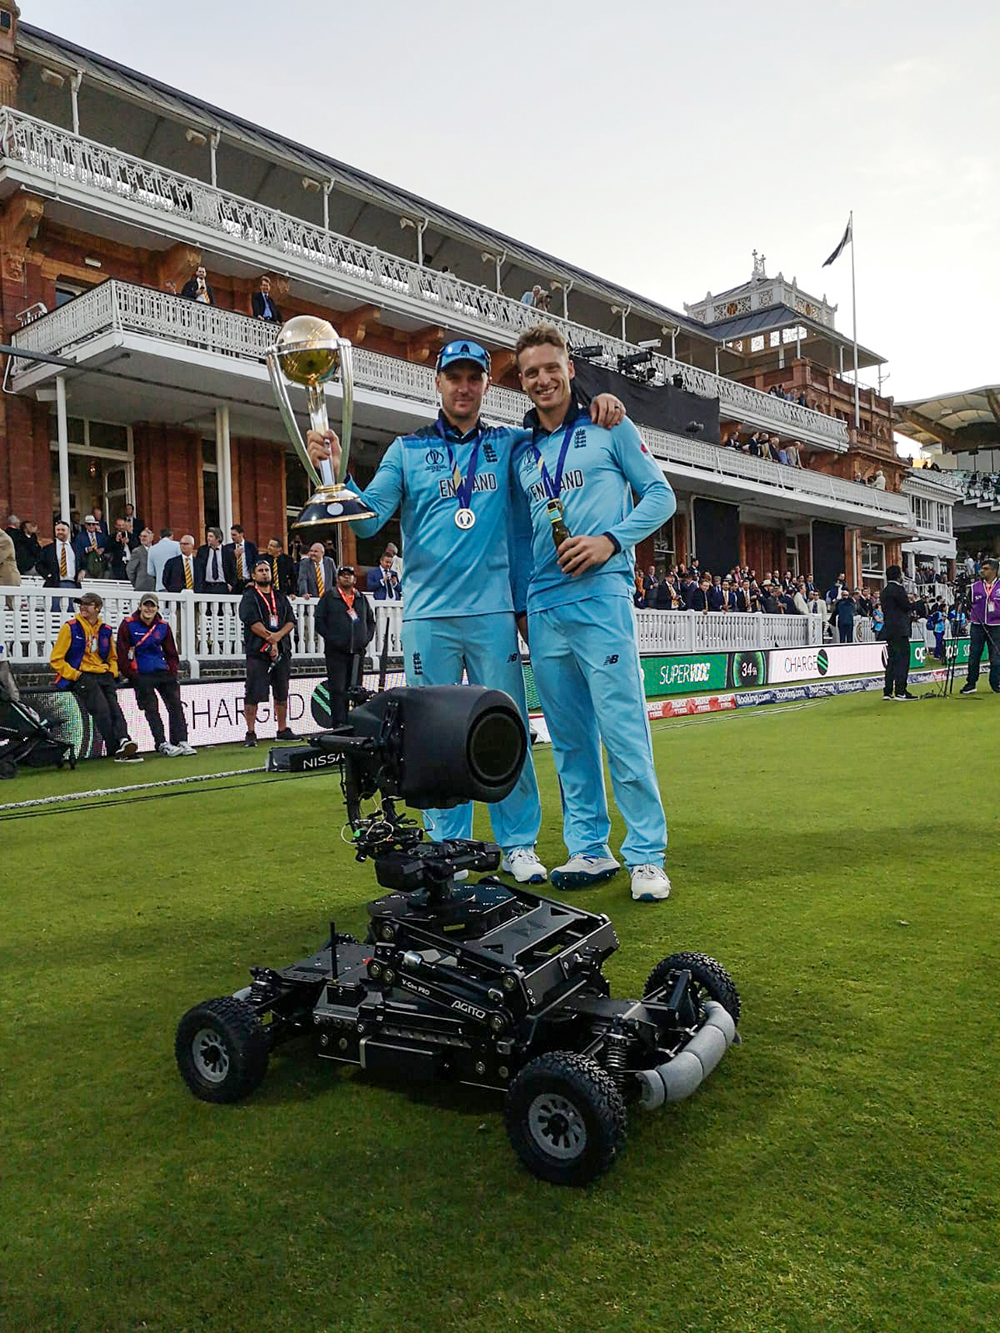 England World Cup winners Jason Roy and Jos Buttler with the Motion Impossible Agito - Pic credit  BatCam.tv